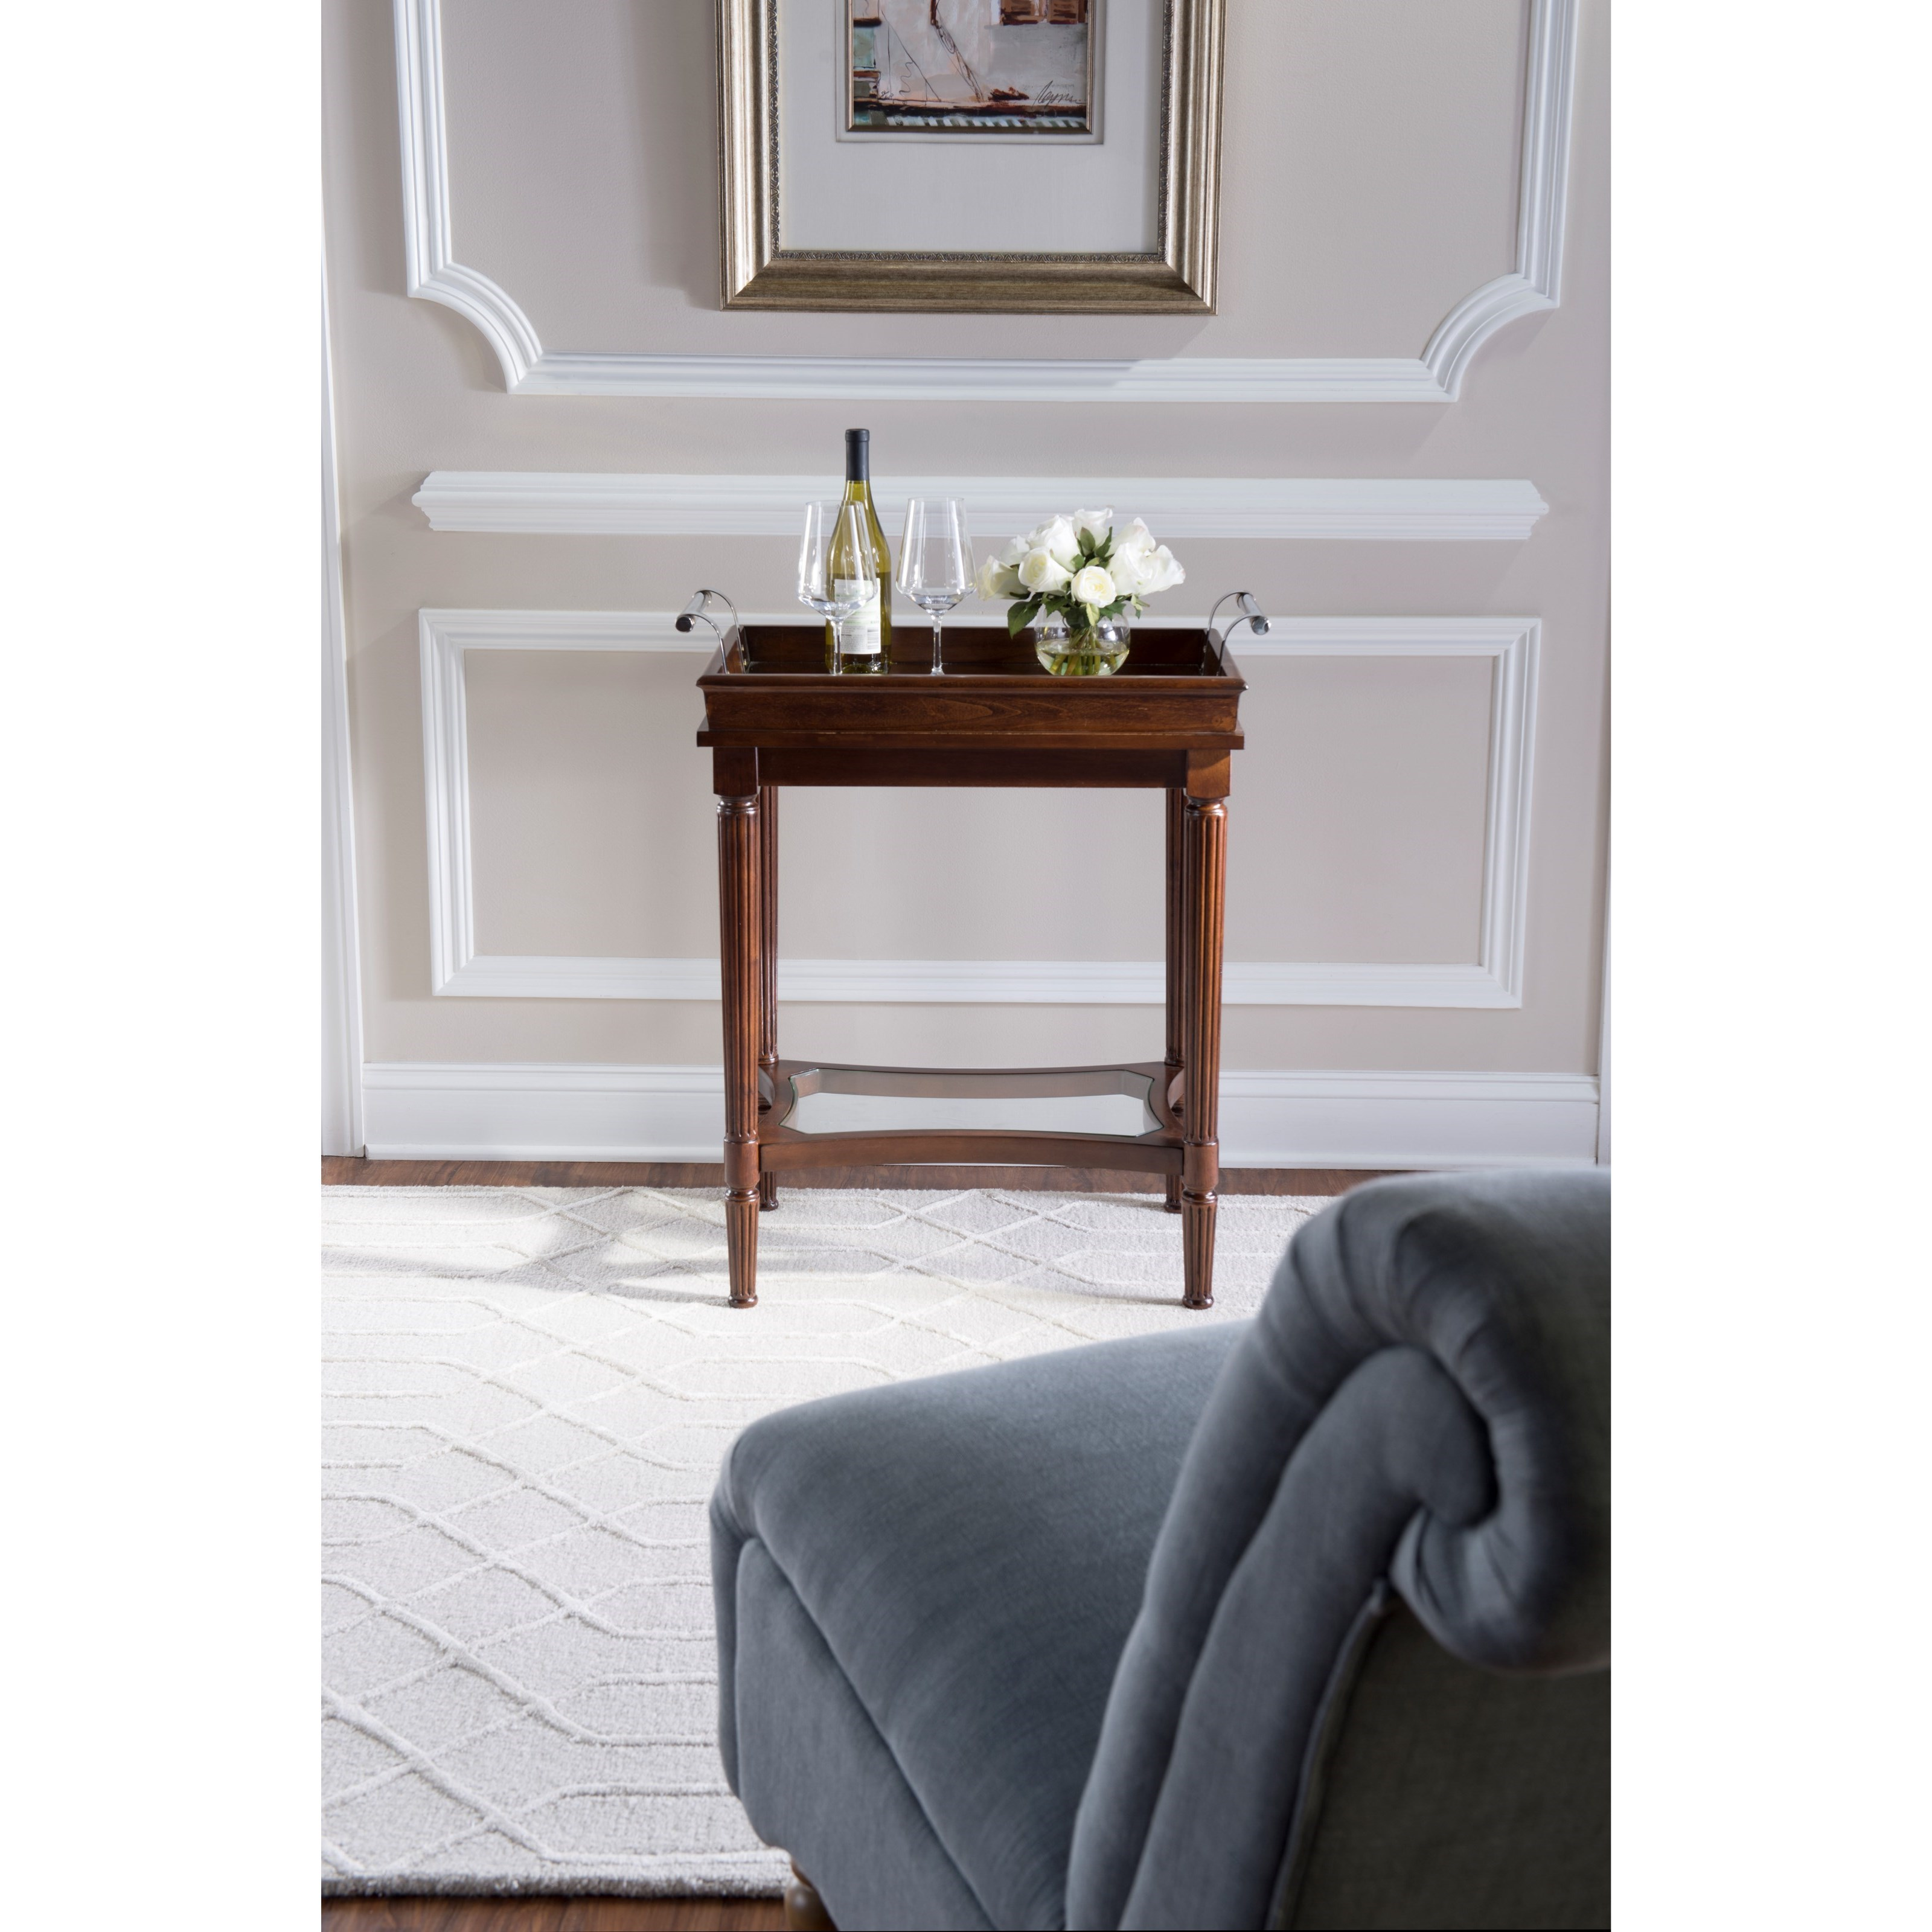 Powell Accent Furniture Masterpiece Mia Cherry Serving Tray Table - Item Number: 16A8223STC